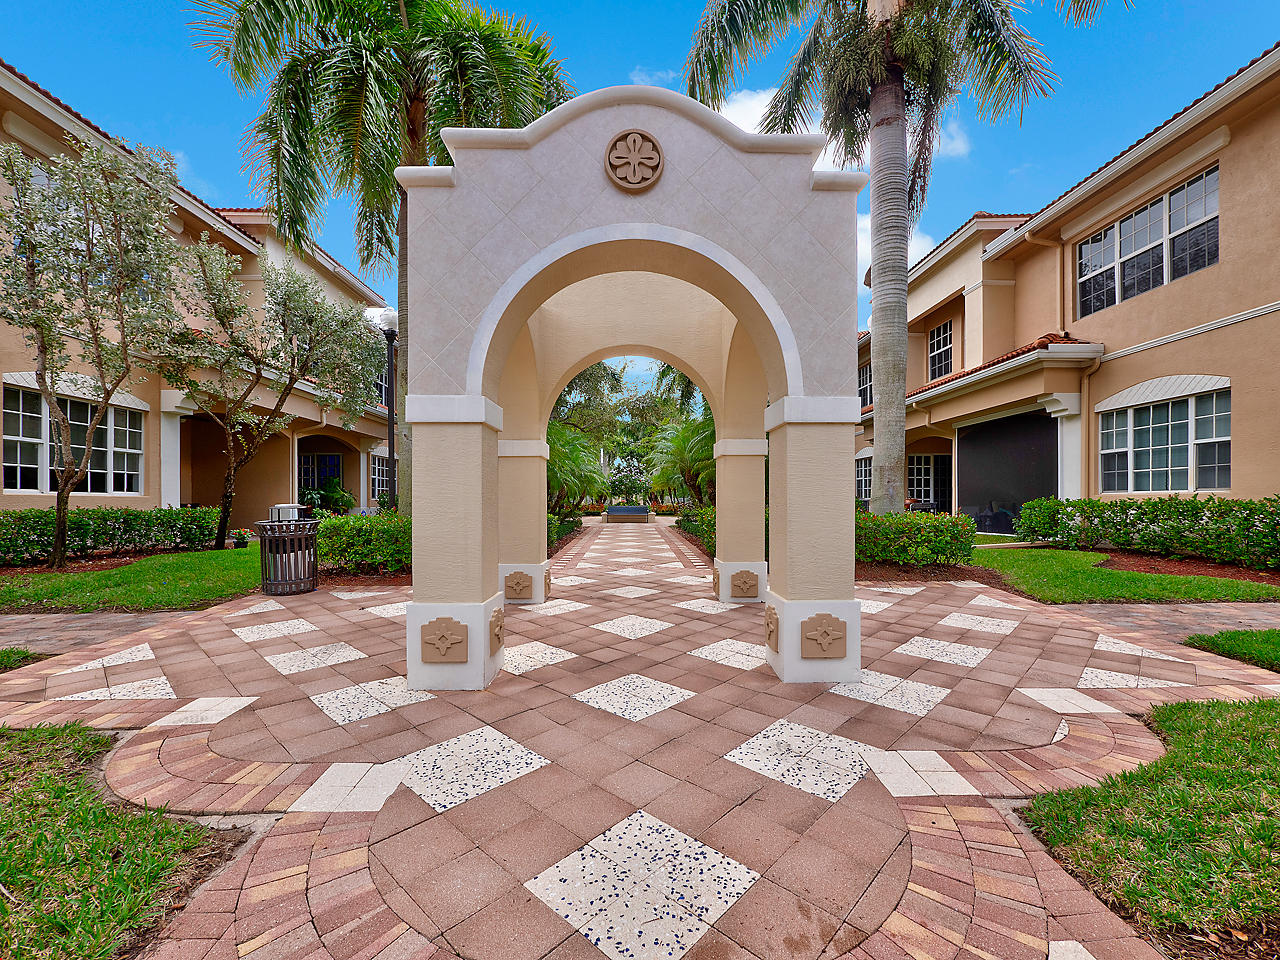 CIELO PALM BEACH GARDENS REAL ESTATE